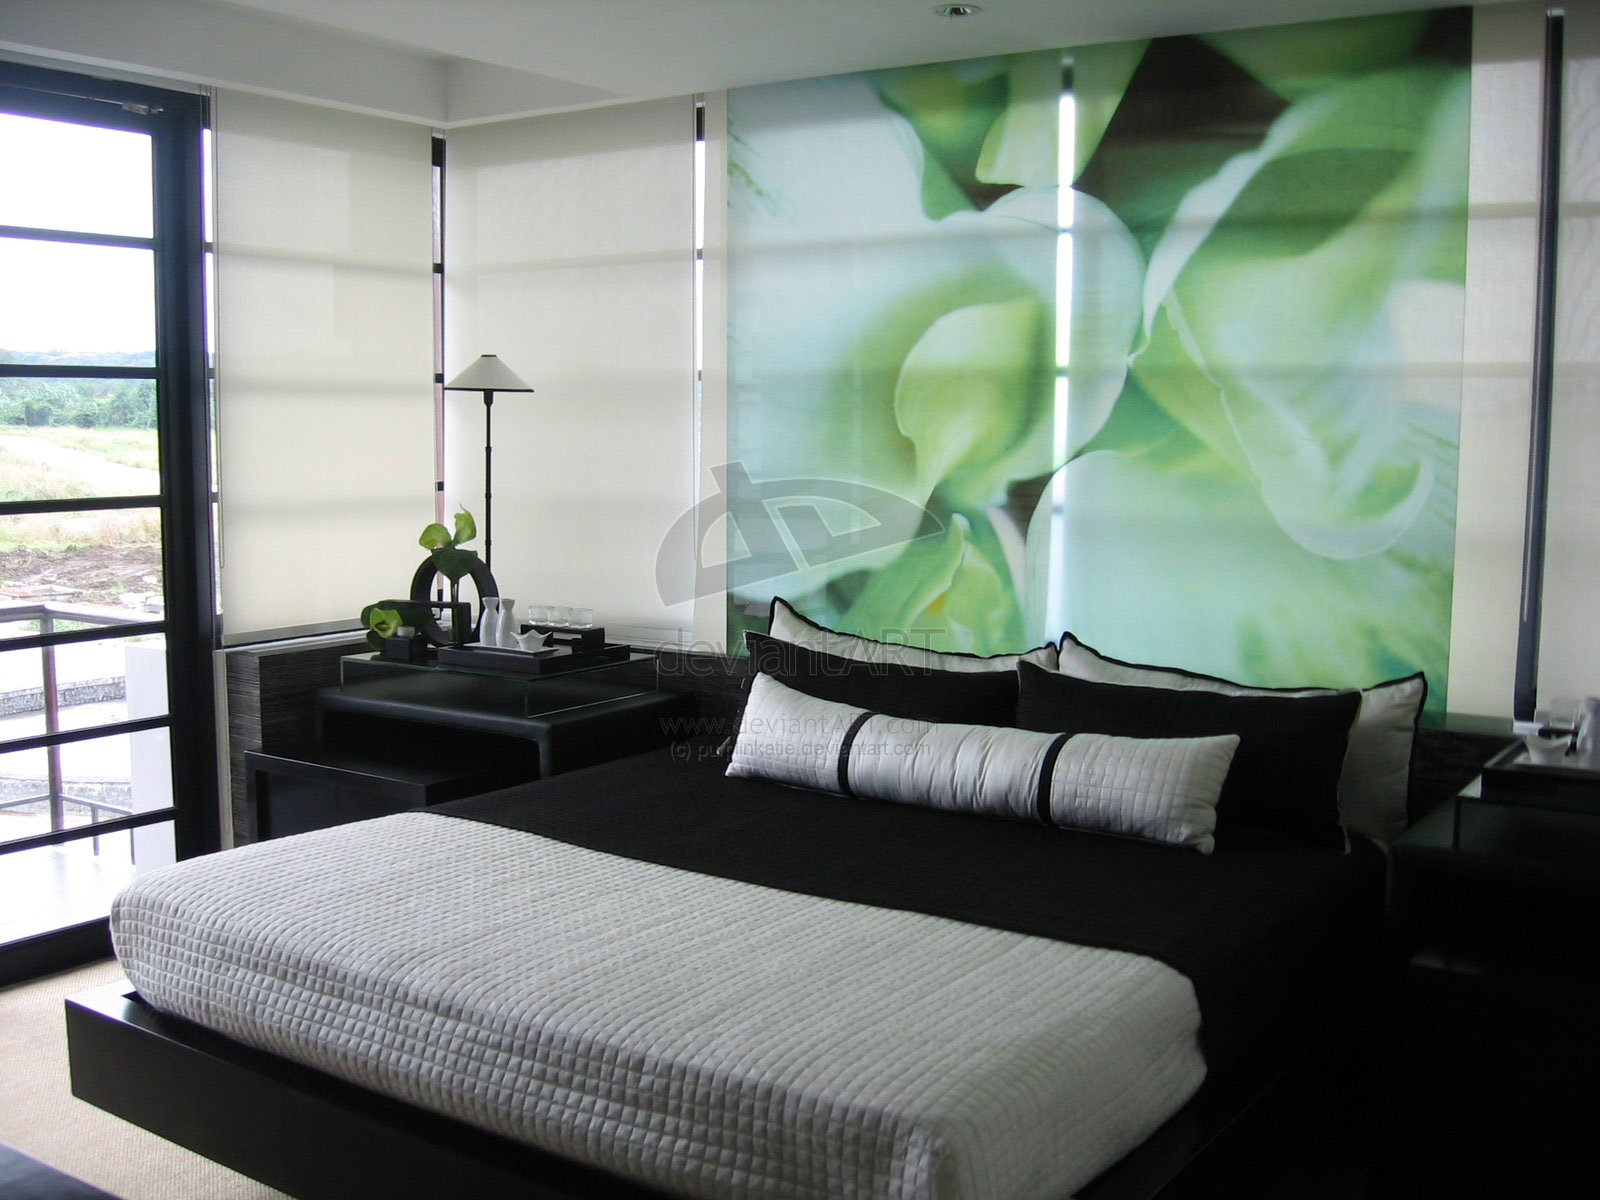 green and black bedroom design photo - 5